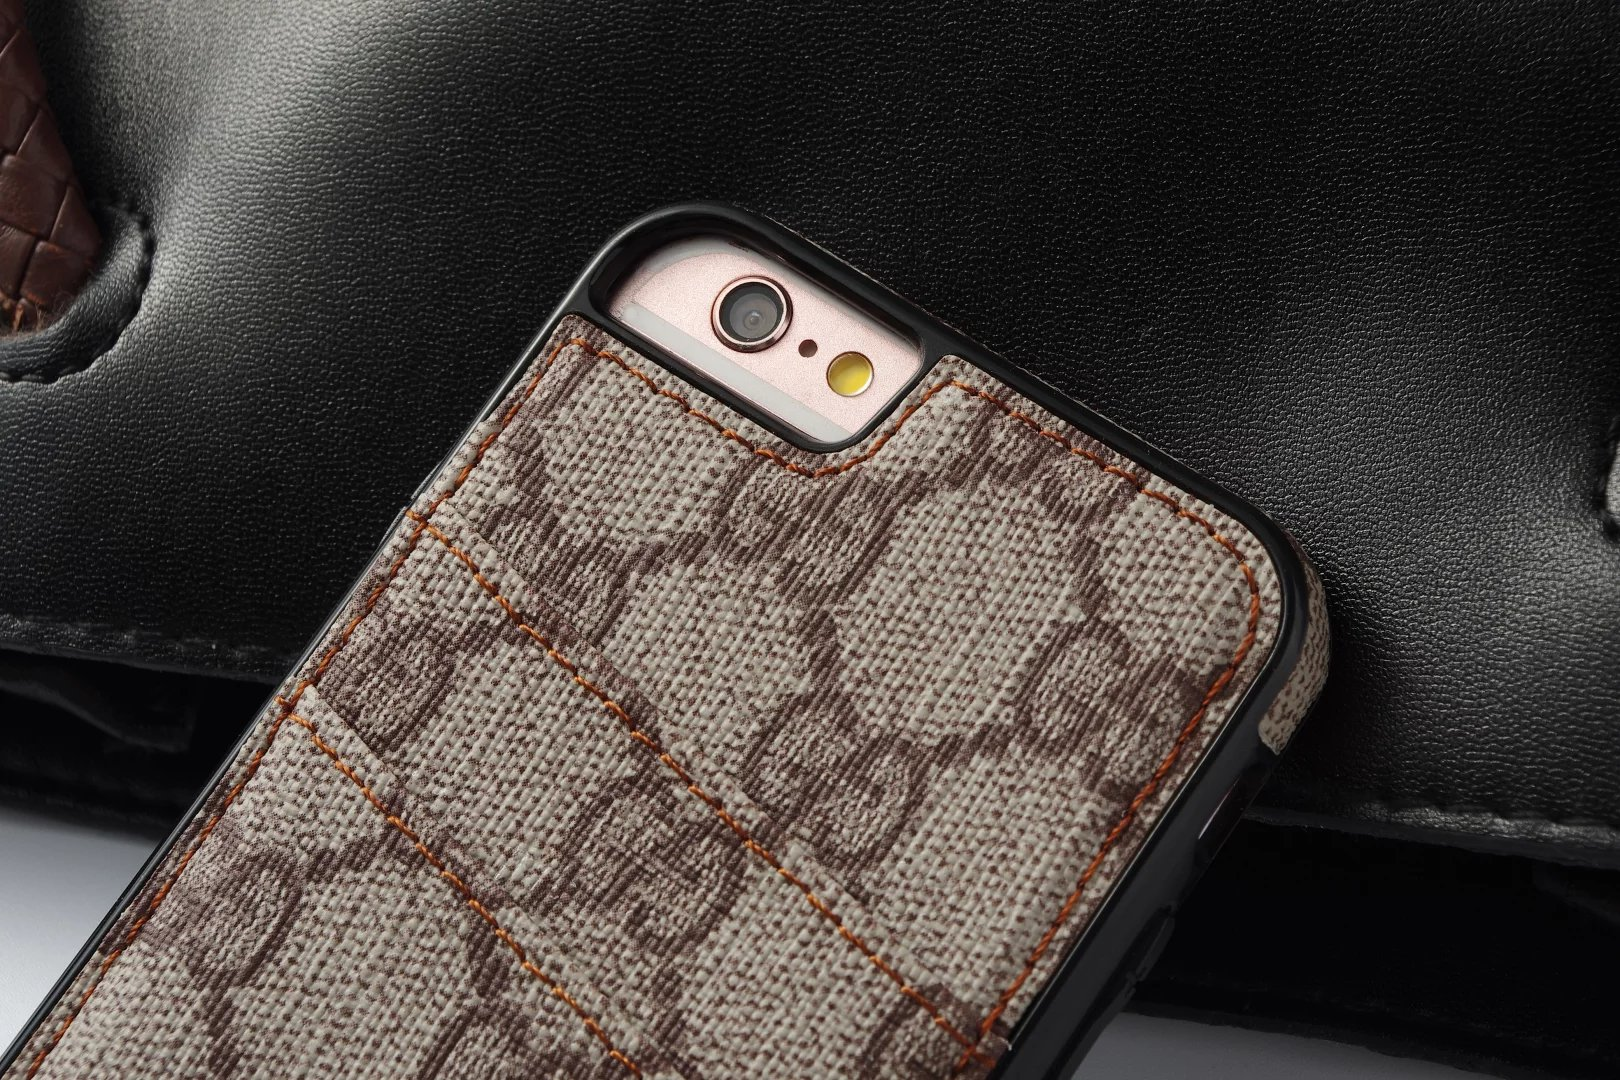 iphone 6 case brand case cover for iphone 6 fashion iphone6 case iphone 6 launch iphone 6 in case all iphone release dates ipod iphone case iphone 2g case in case phone cases